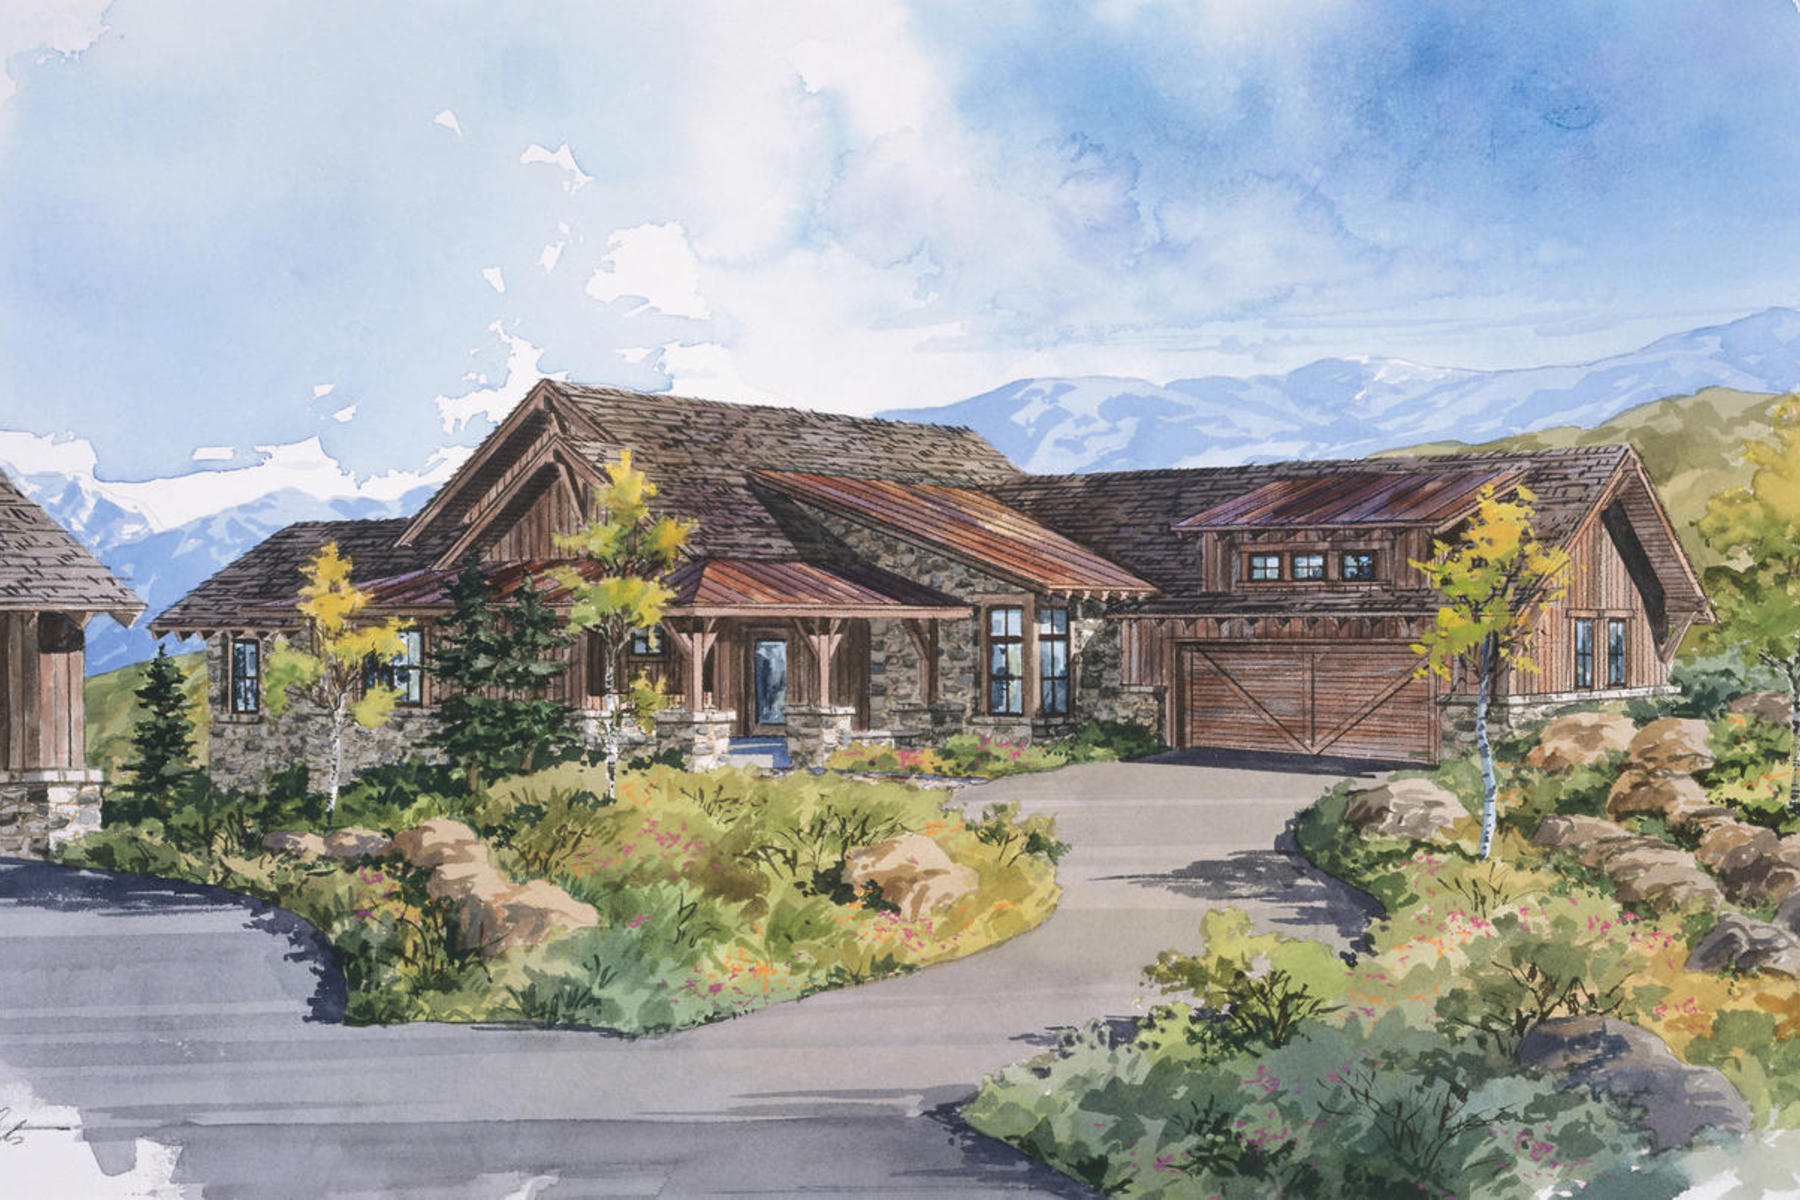 Casa Unifamiliar por un Venta en Park City Cabin in Promontory A Private Mountain Golf Recreational Community 3809 Cynthia Cir Lot 24 Park City, Utah, 84098 Estados Unidos